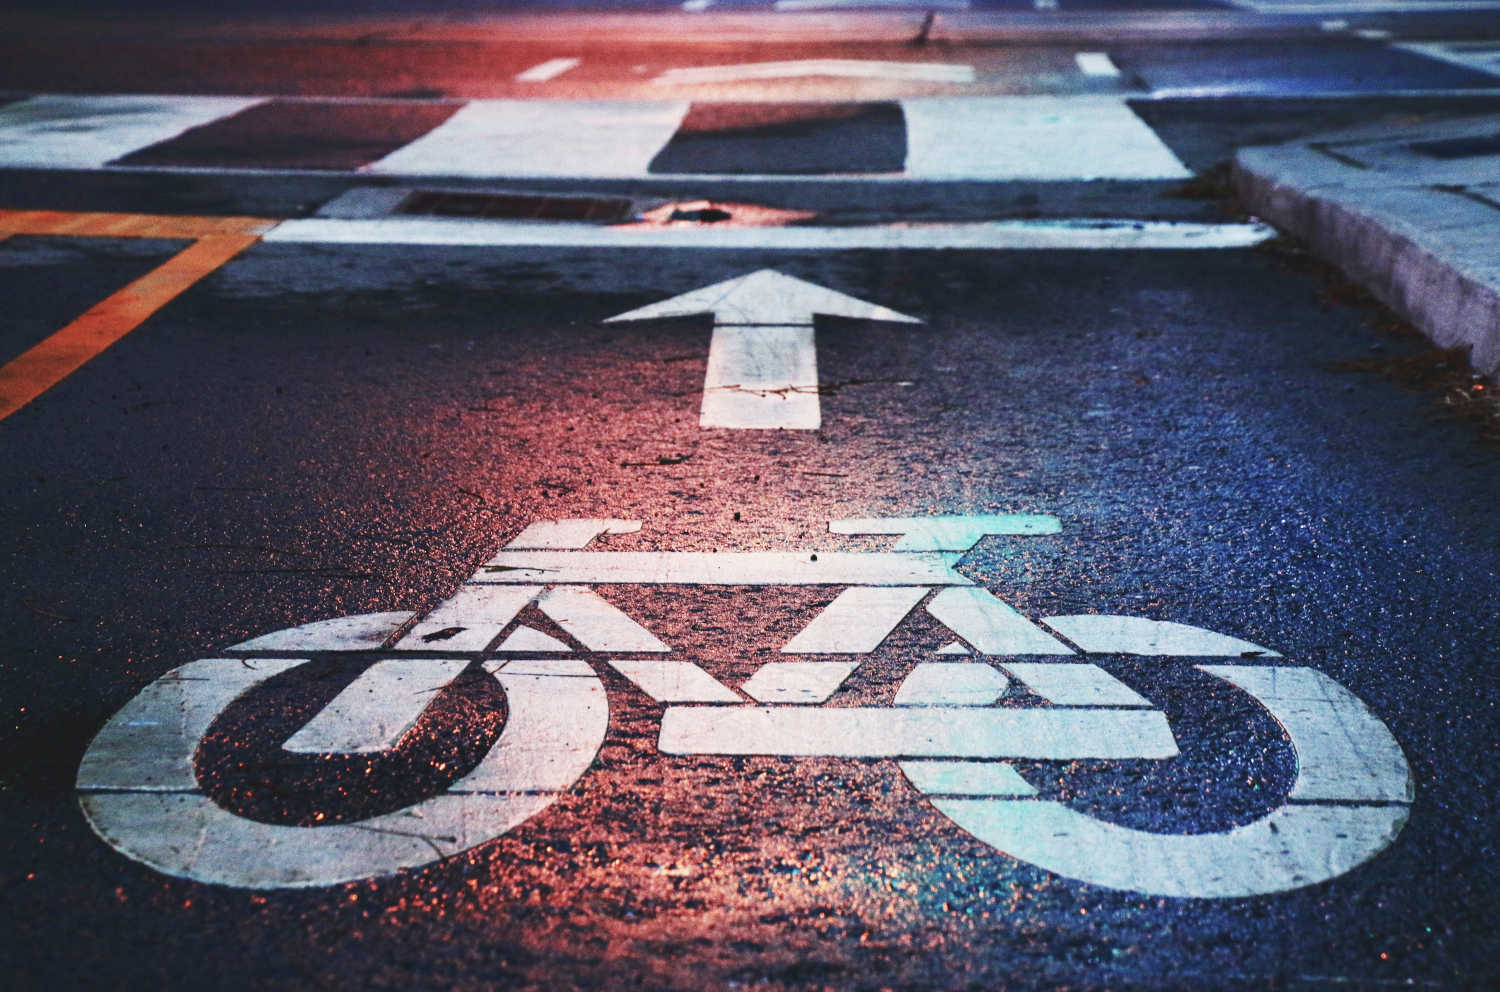 A closeup of a bike symbol, designating a section of the road as a cycle lane.